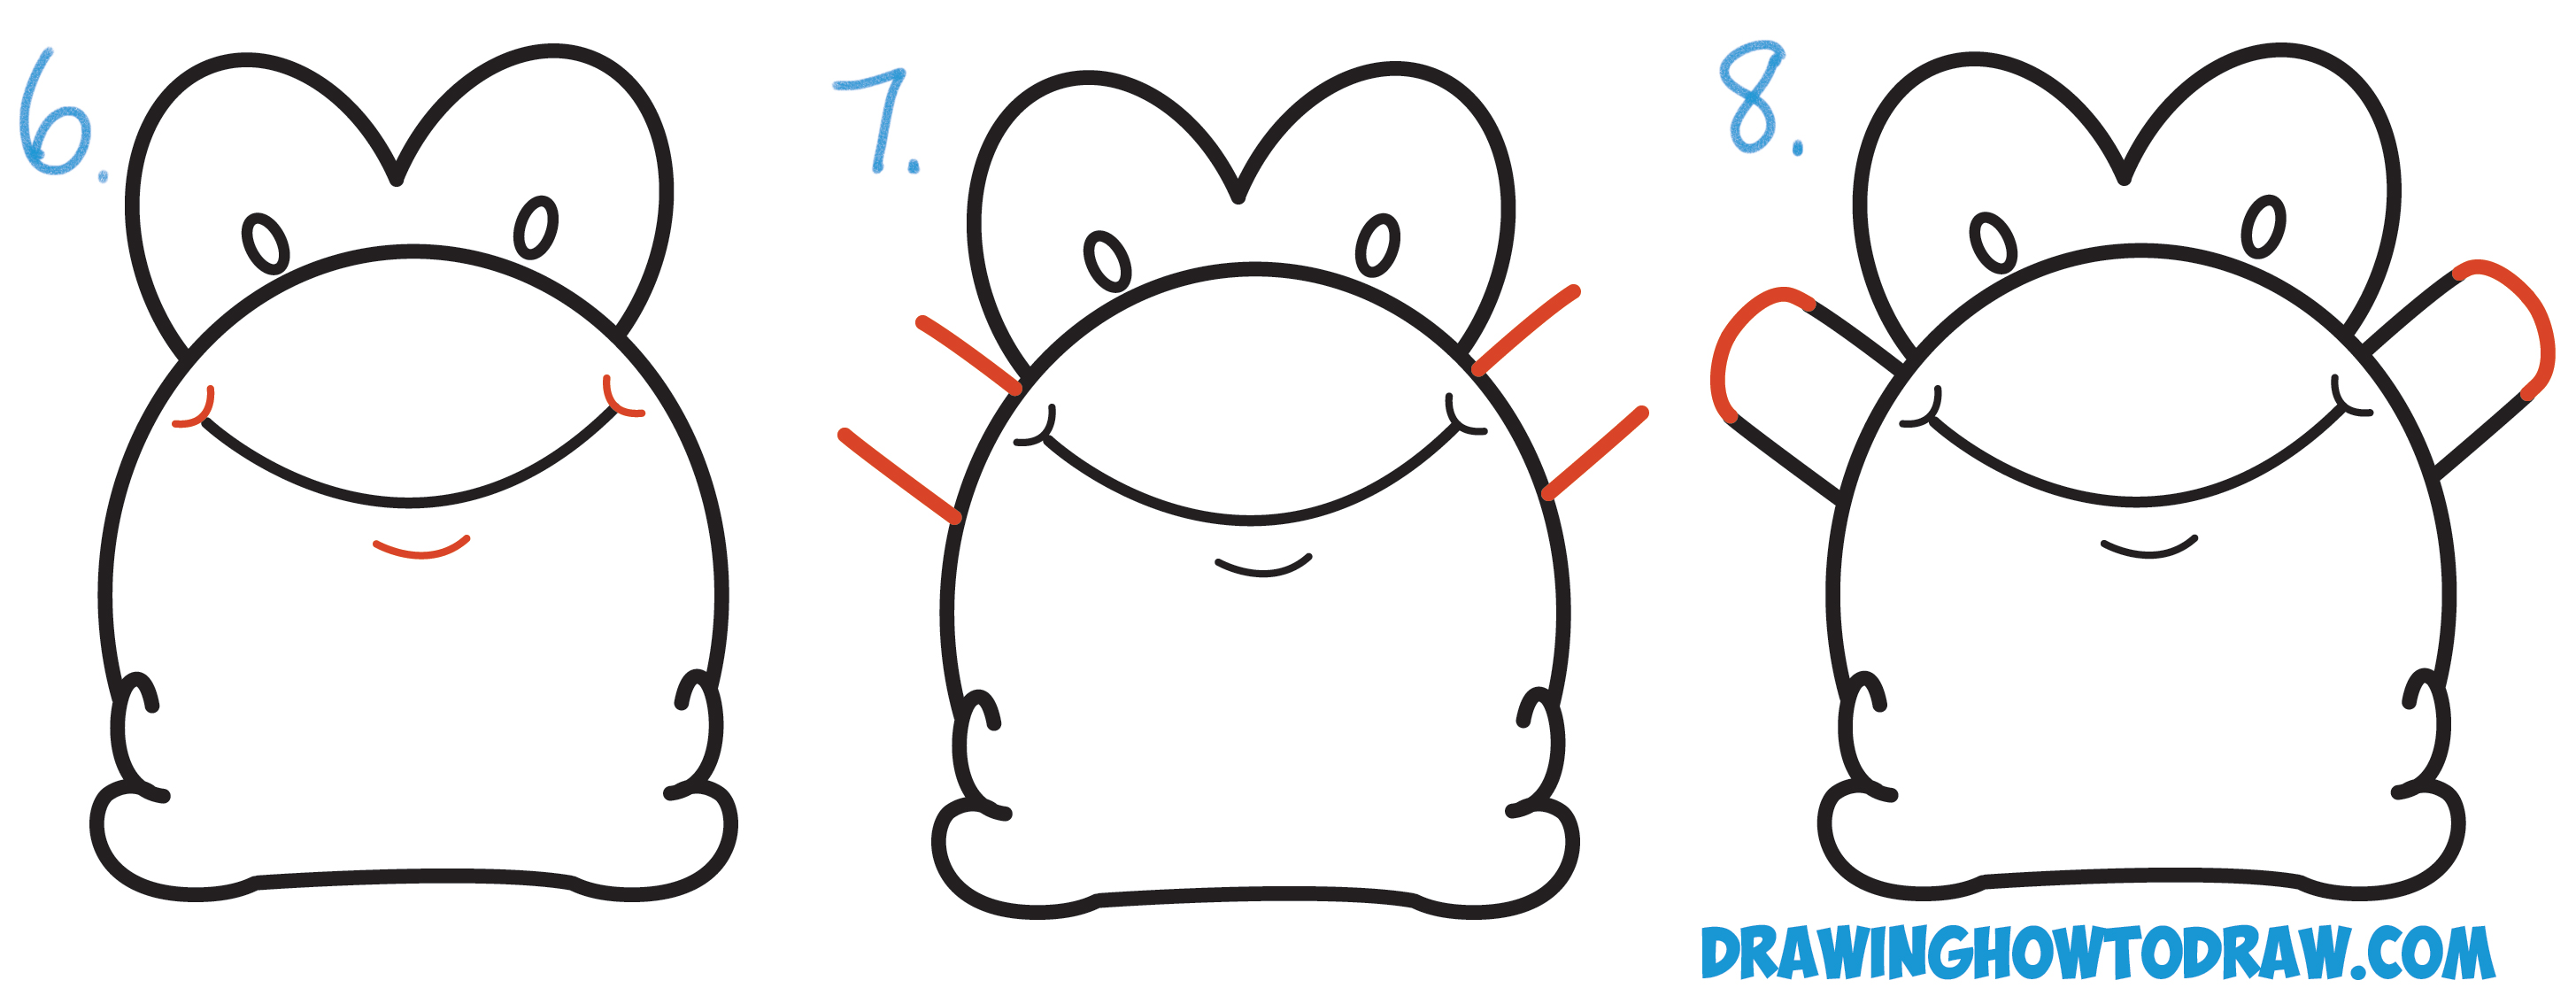 Learn How to Draw Cute Cartoon Baby Frog from Number 3 Shape Simple Steps Drawing Lesson for Beginners